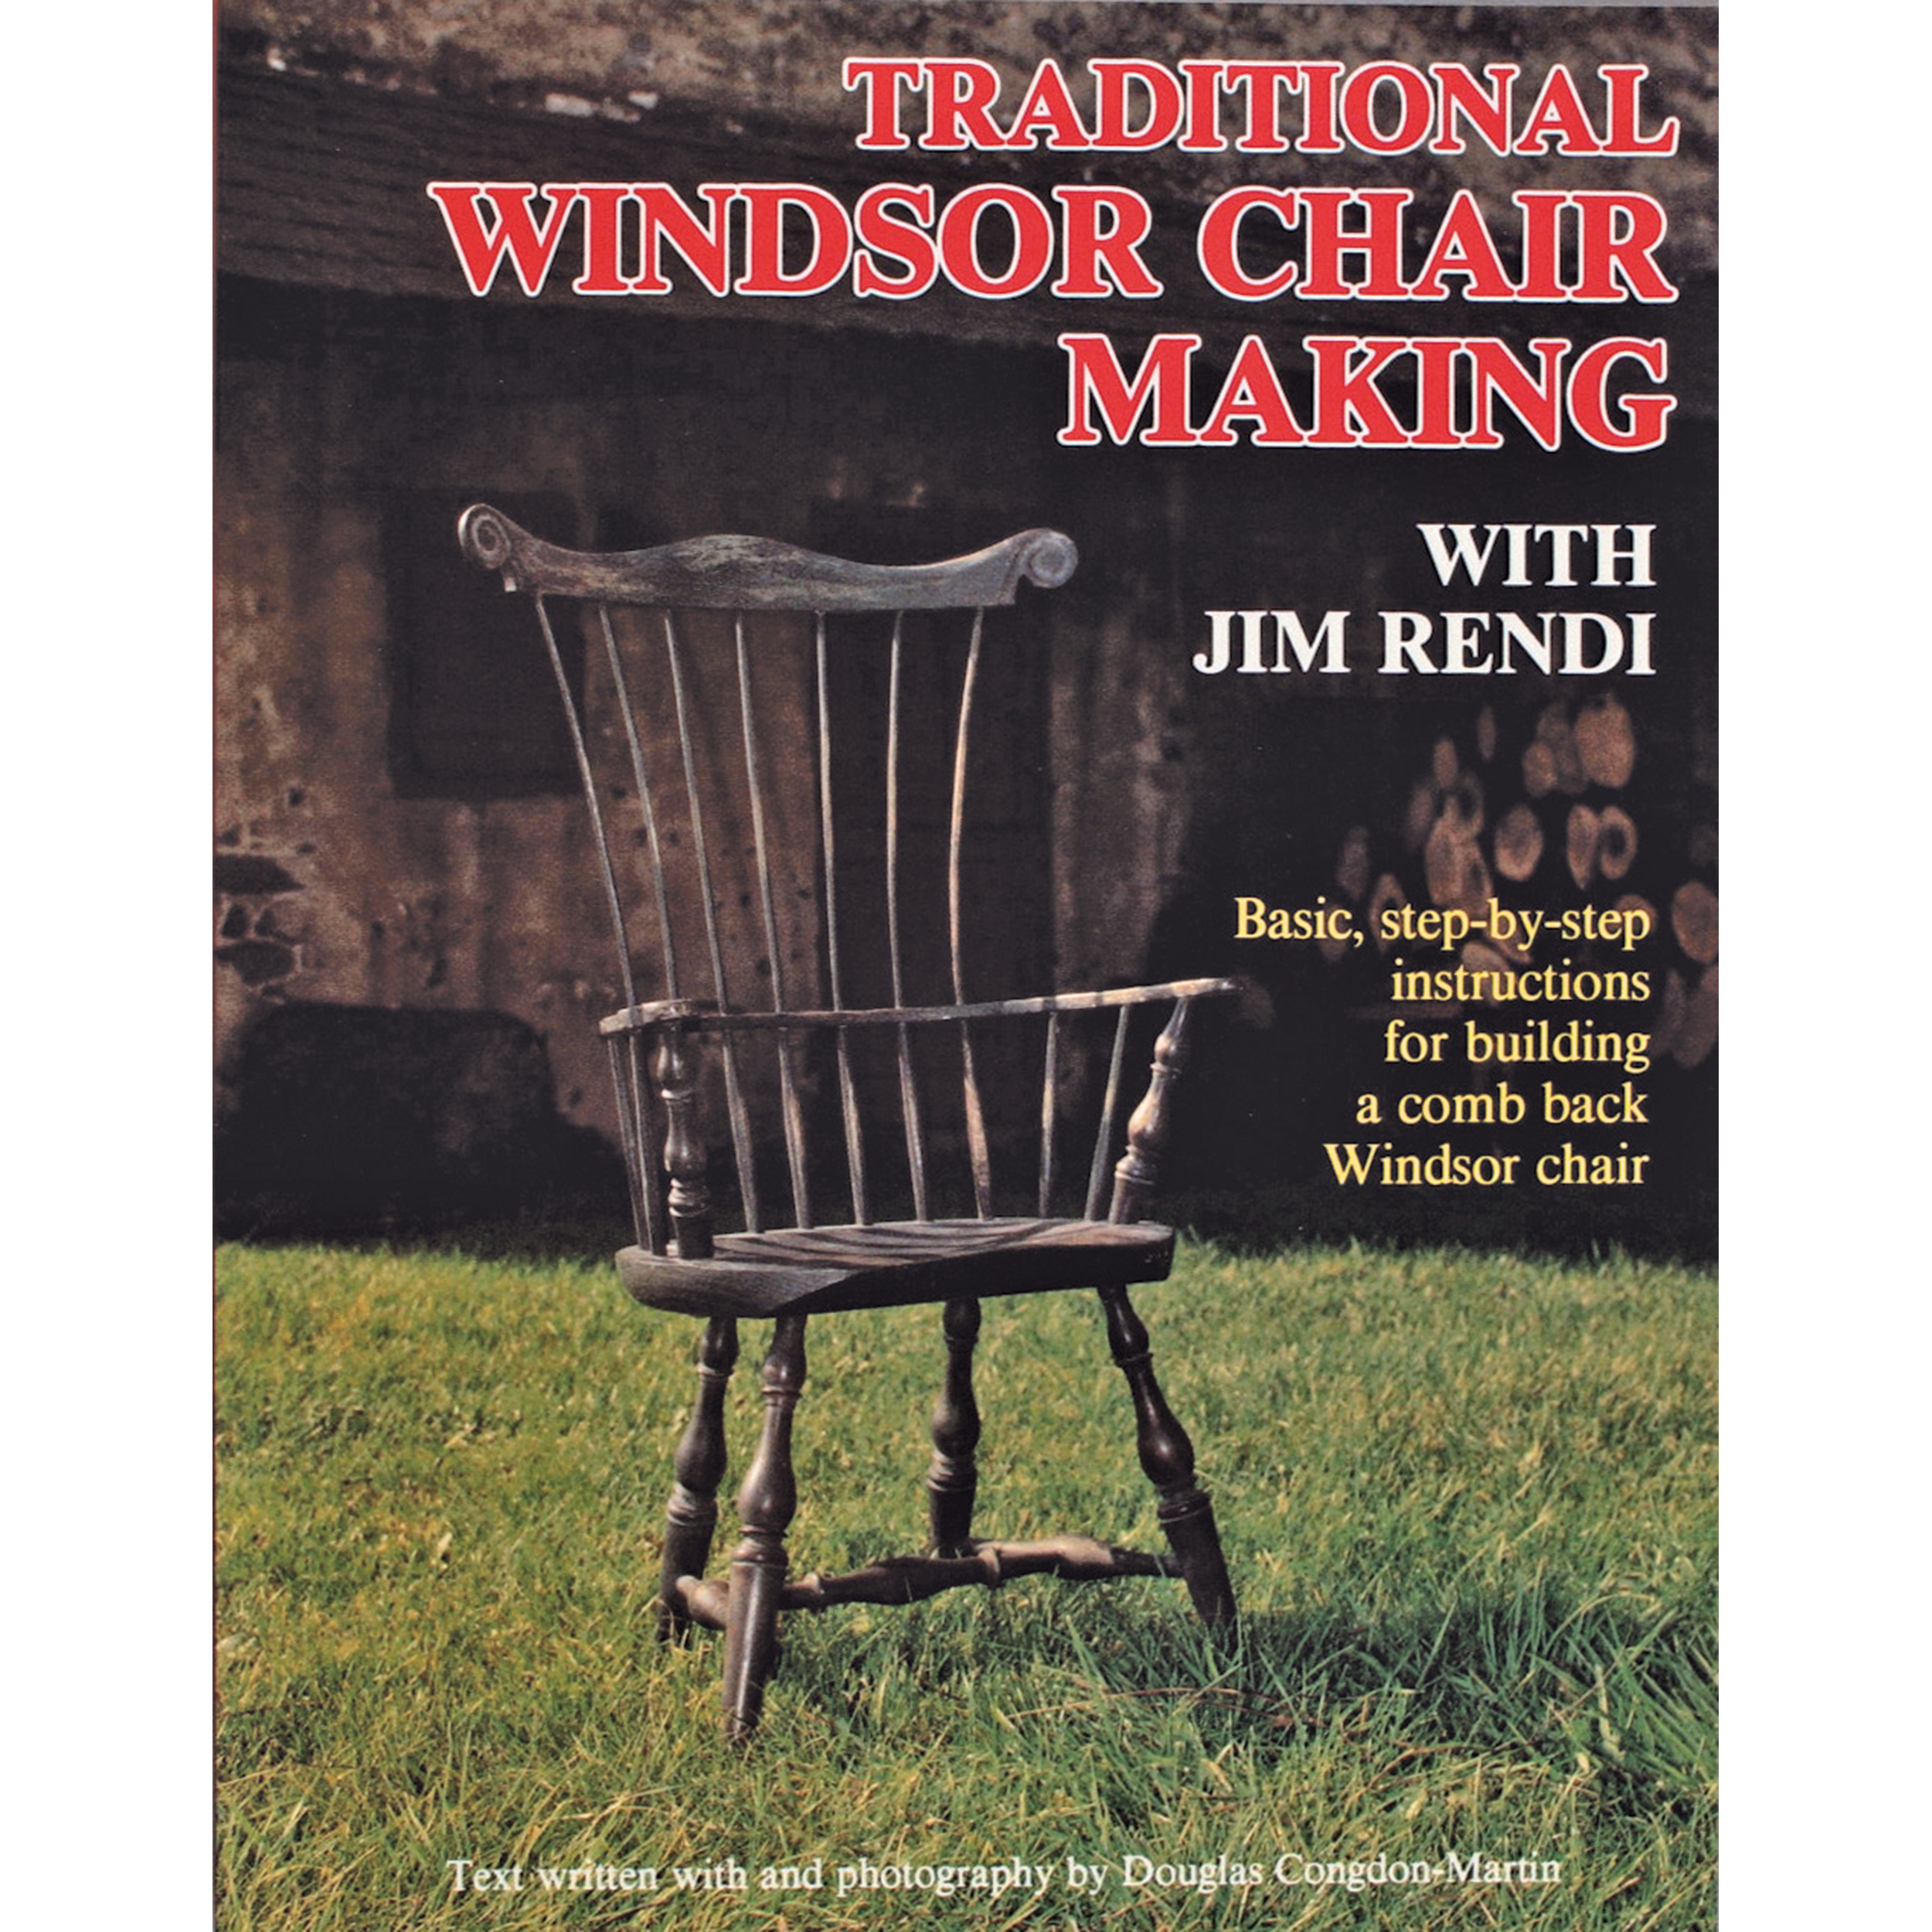 Traditional Windsor Chair Making with Jim Rendi